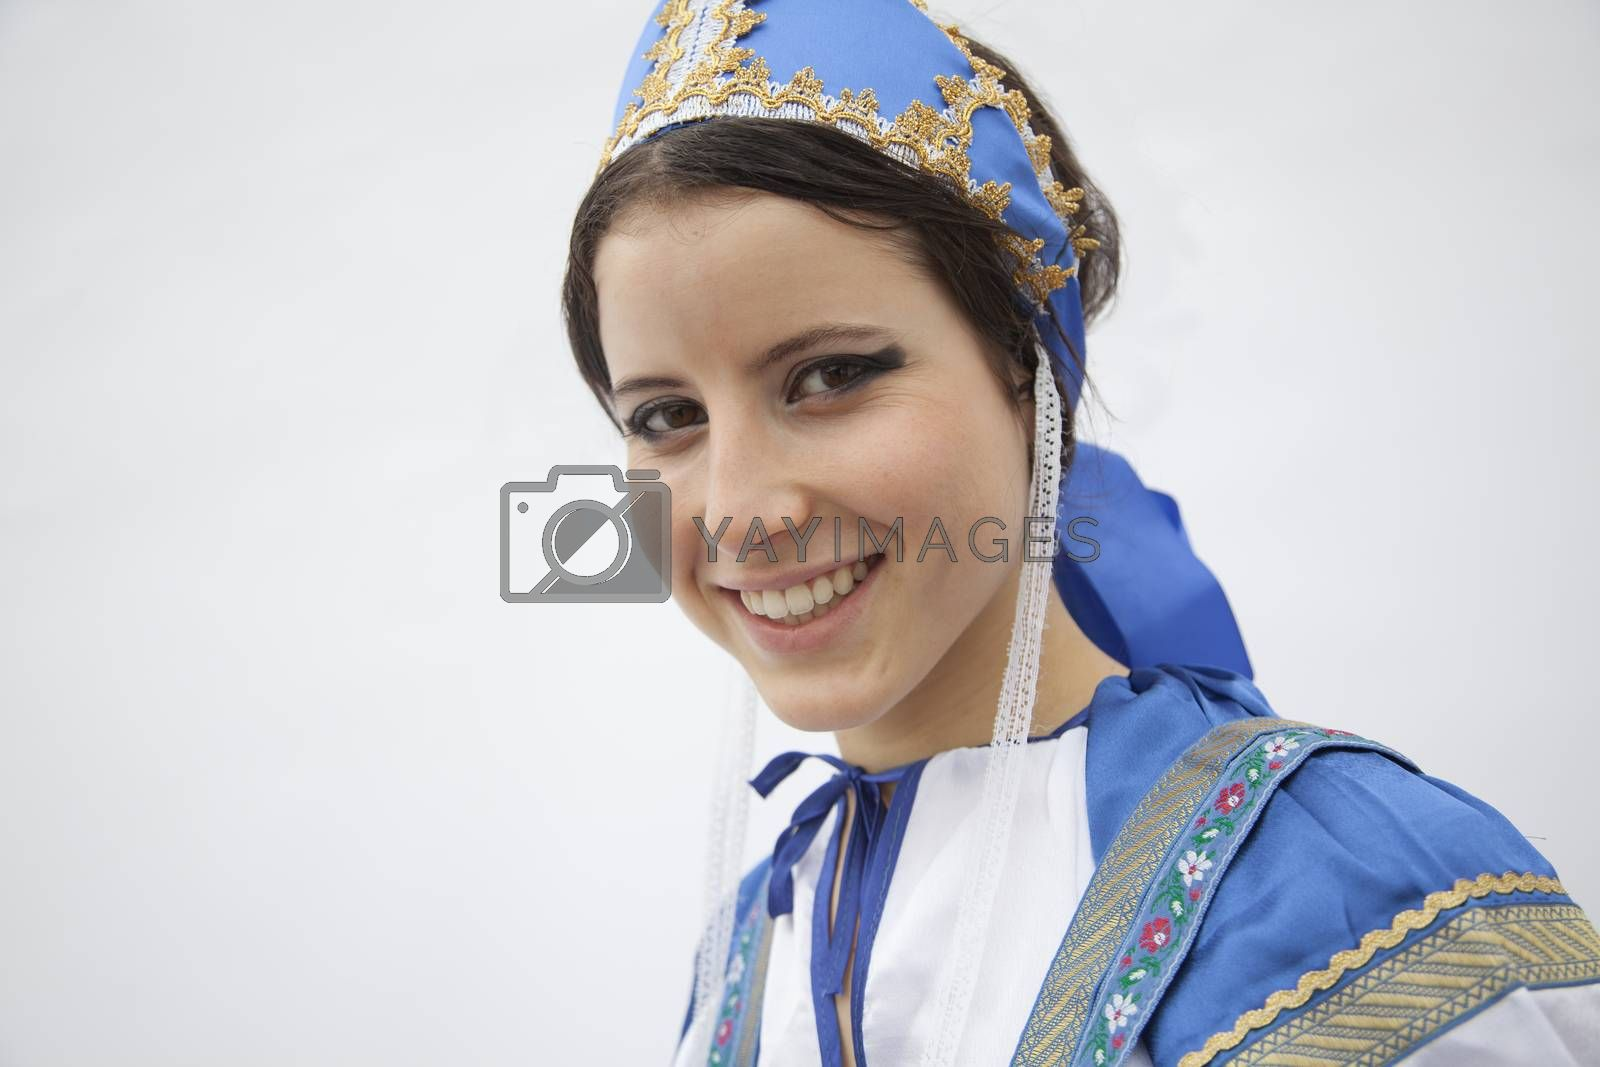 Portrait of young smiling woman in traditional clothing from Russia, studio shot by XiXinXing